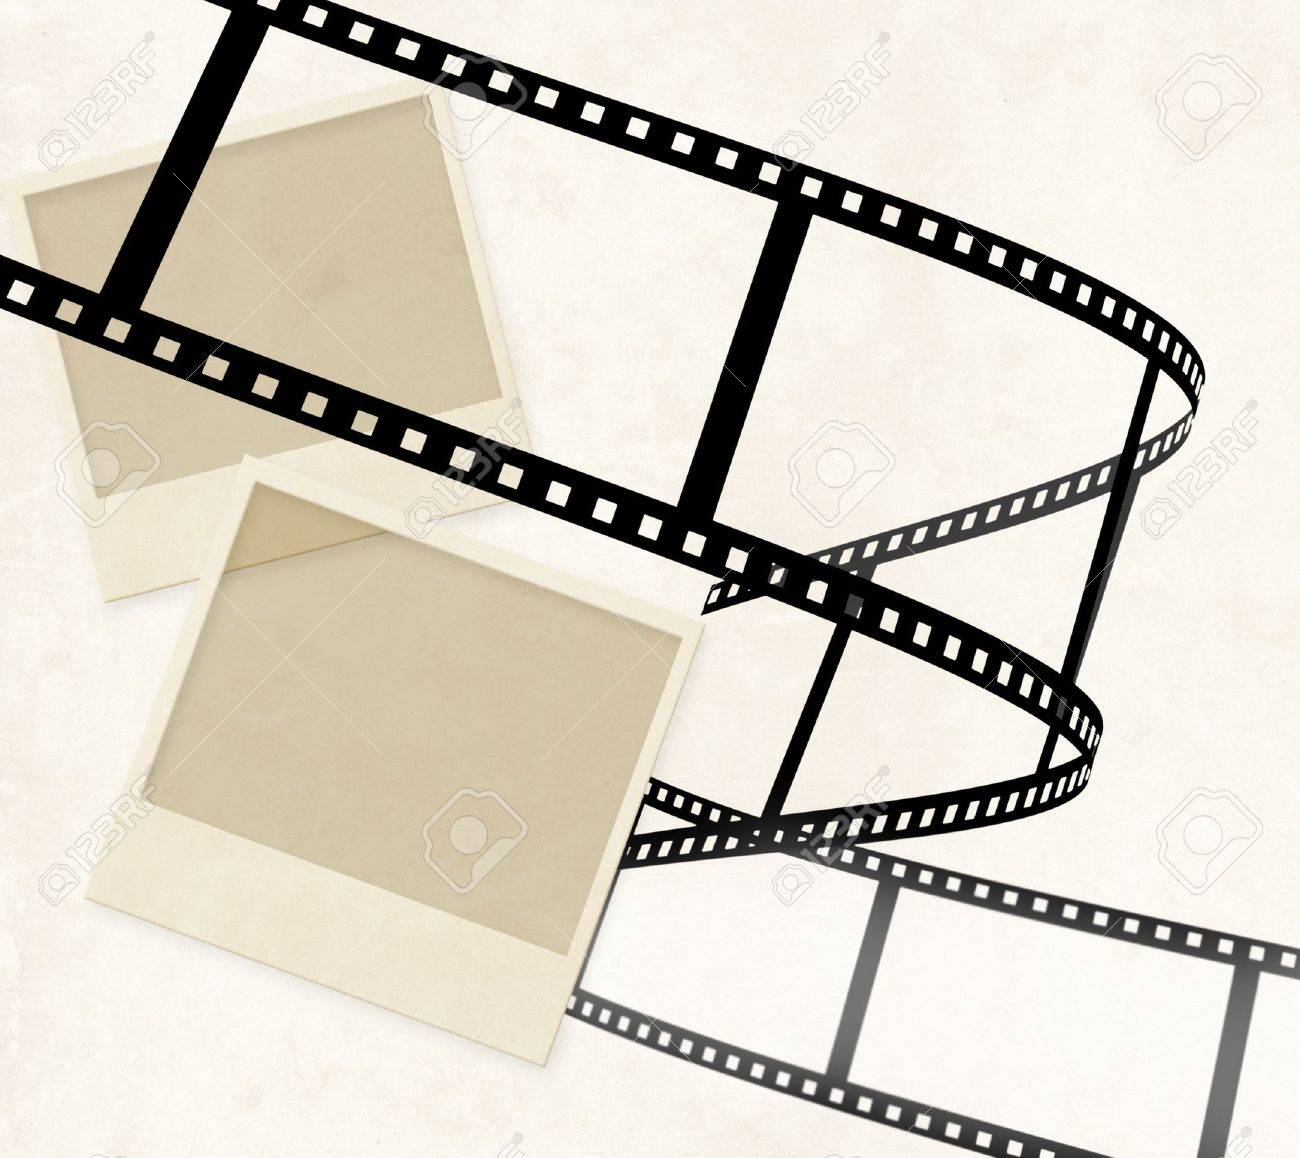 Grunge background with old photo and filmstrip Stock Photo - 9156239